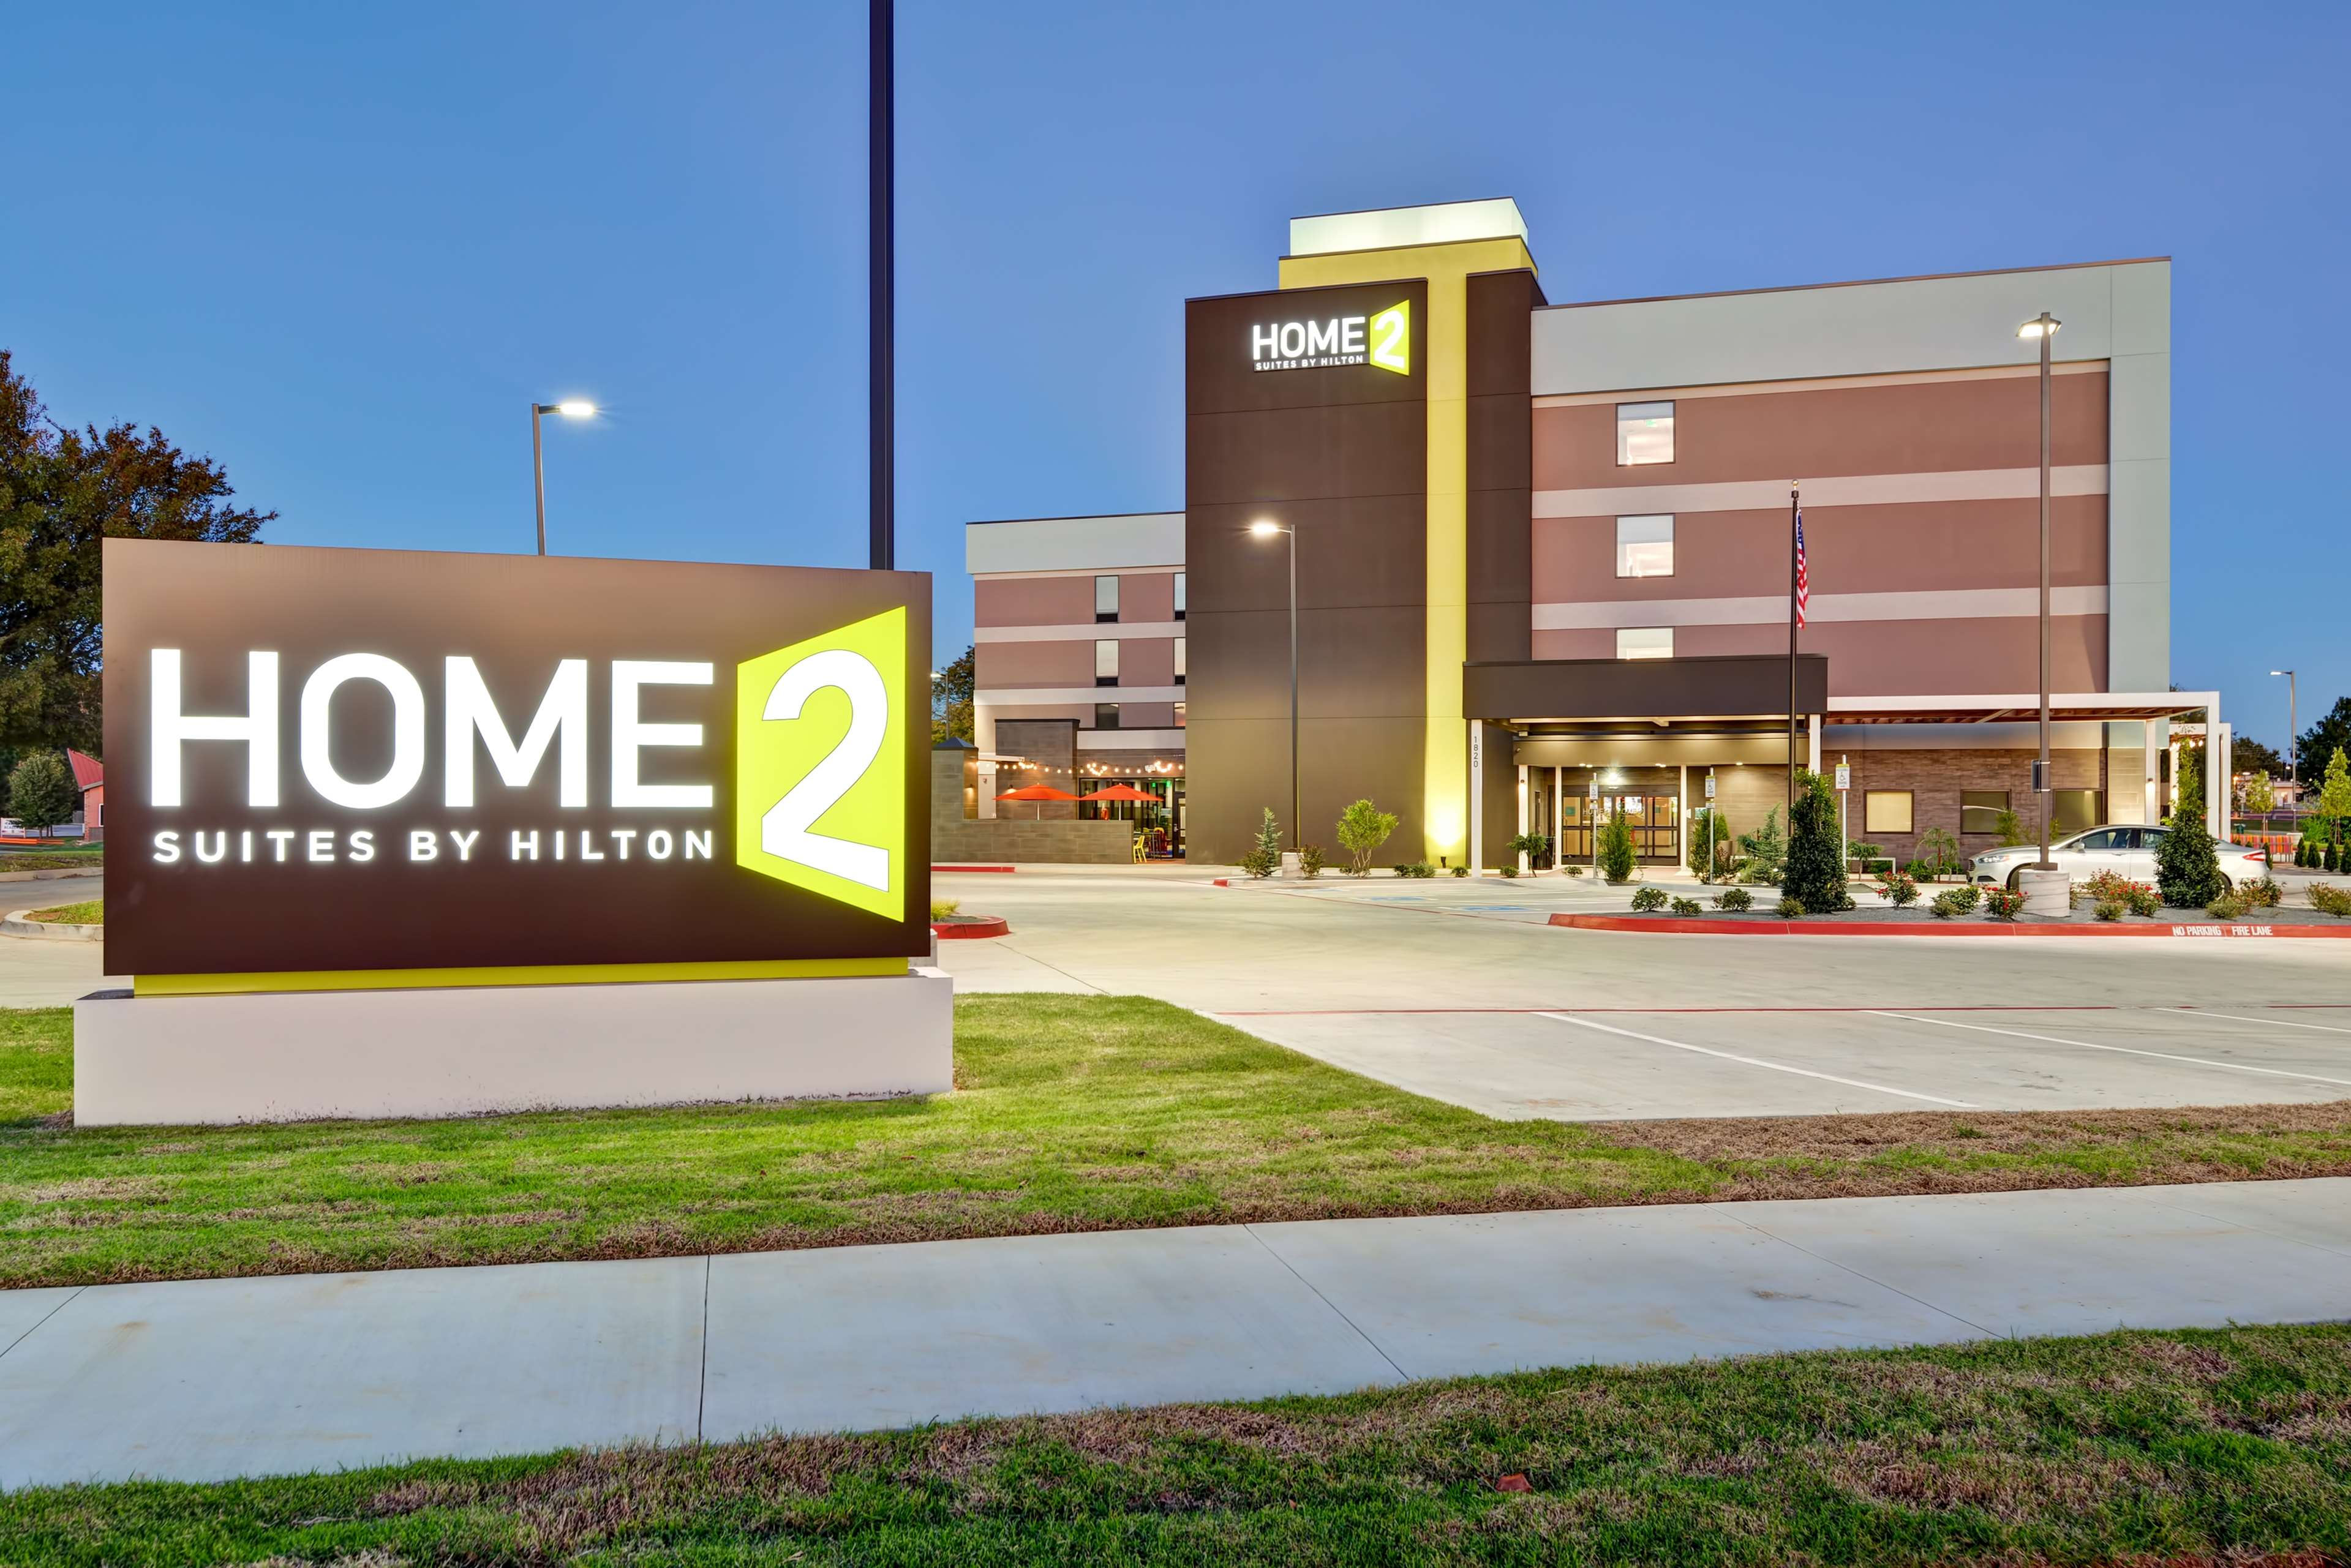 Home2 Suites by Hilton OKC Midwest City Tinker AFB image 4